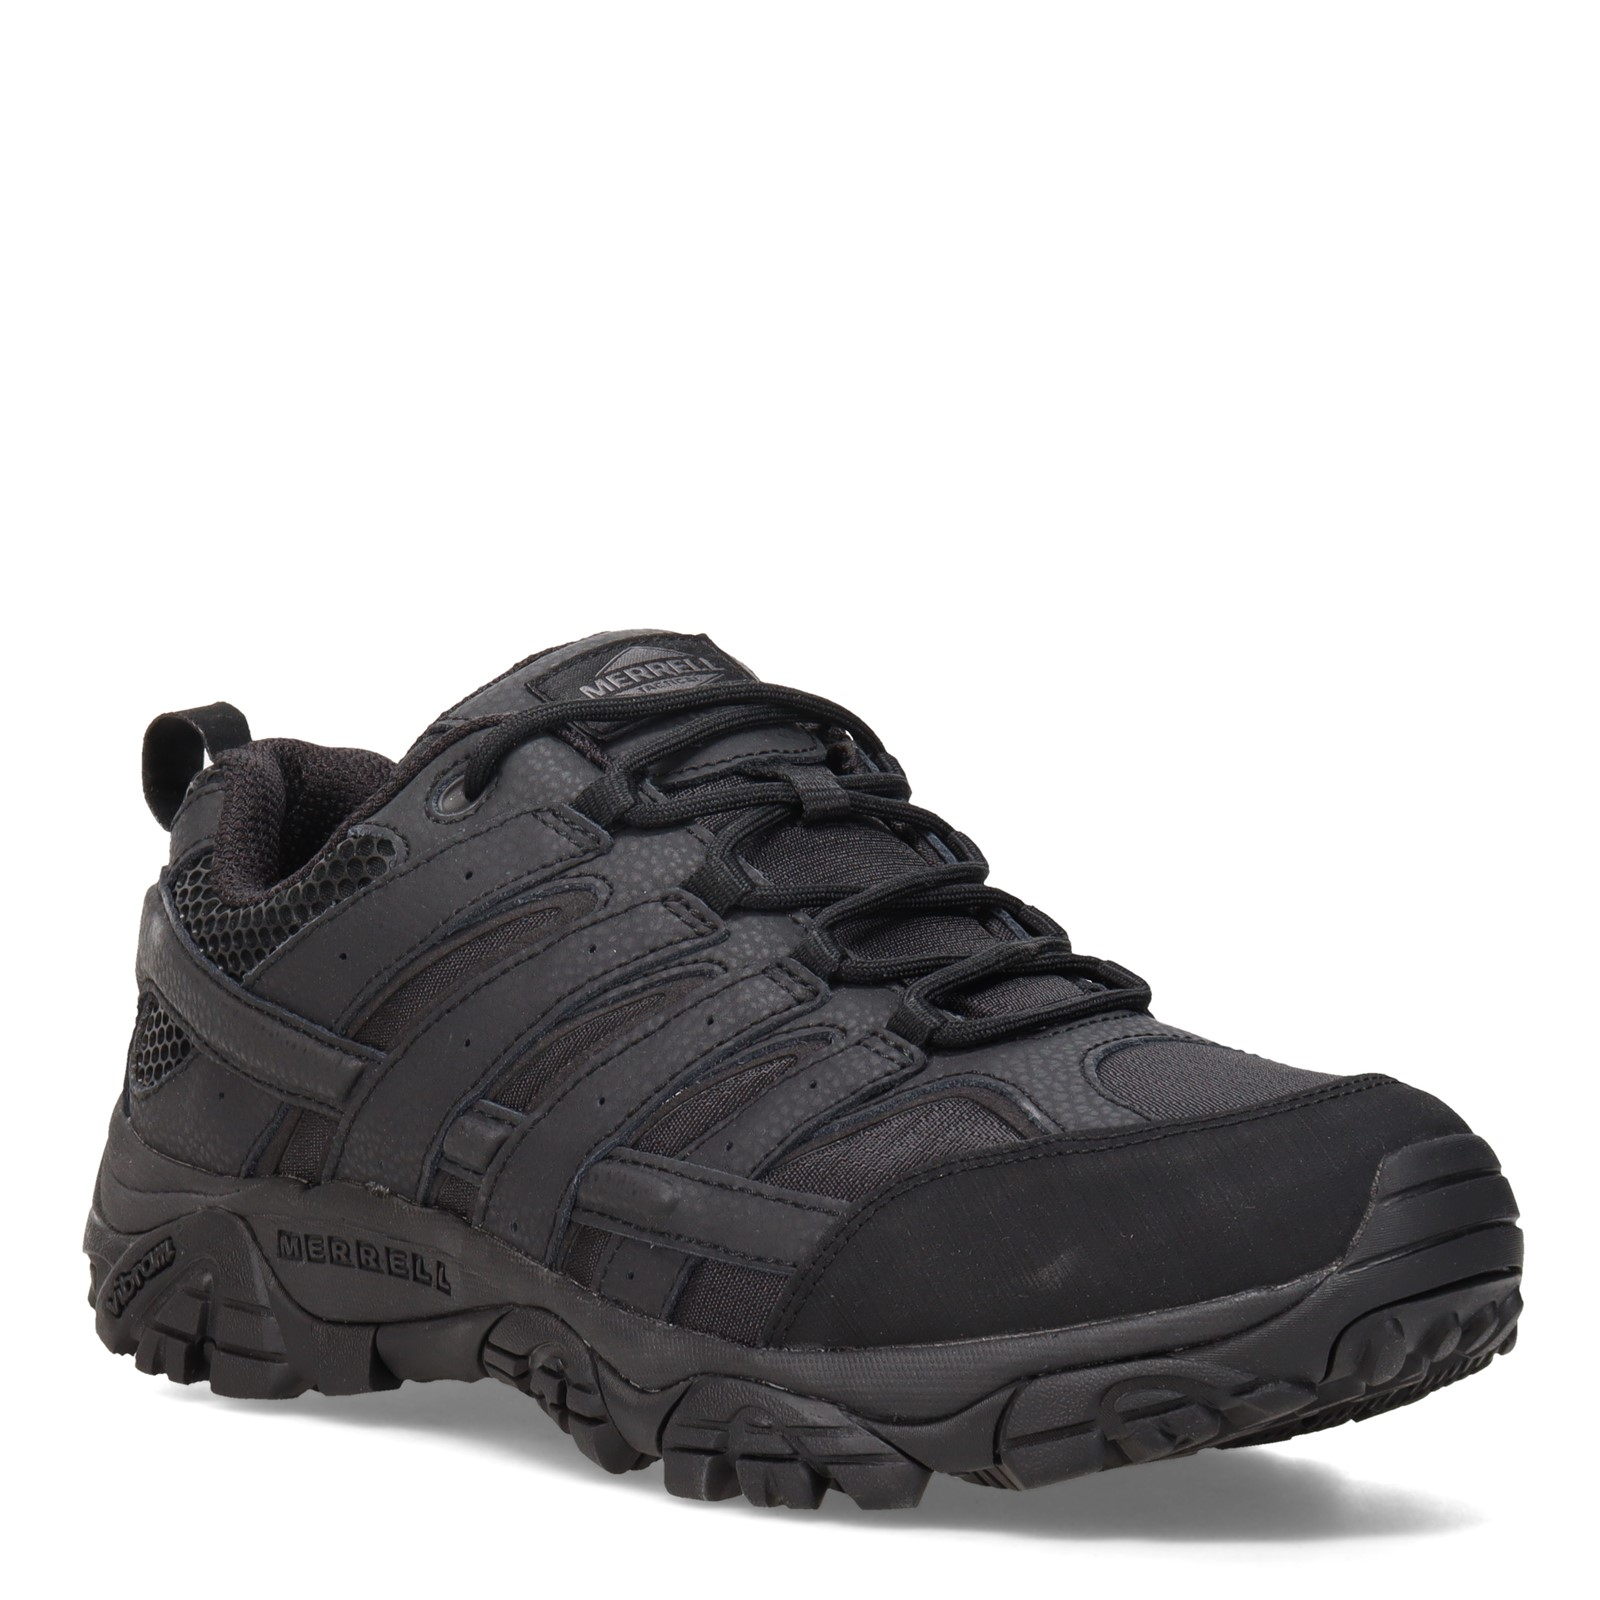 Men's Merrell, Moab 2 Tactical Low